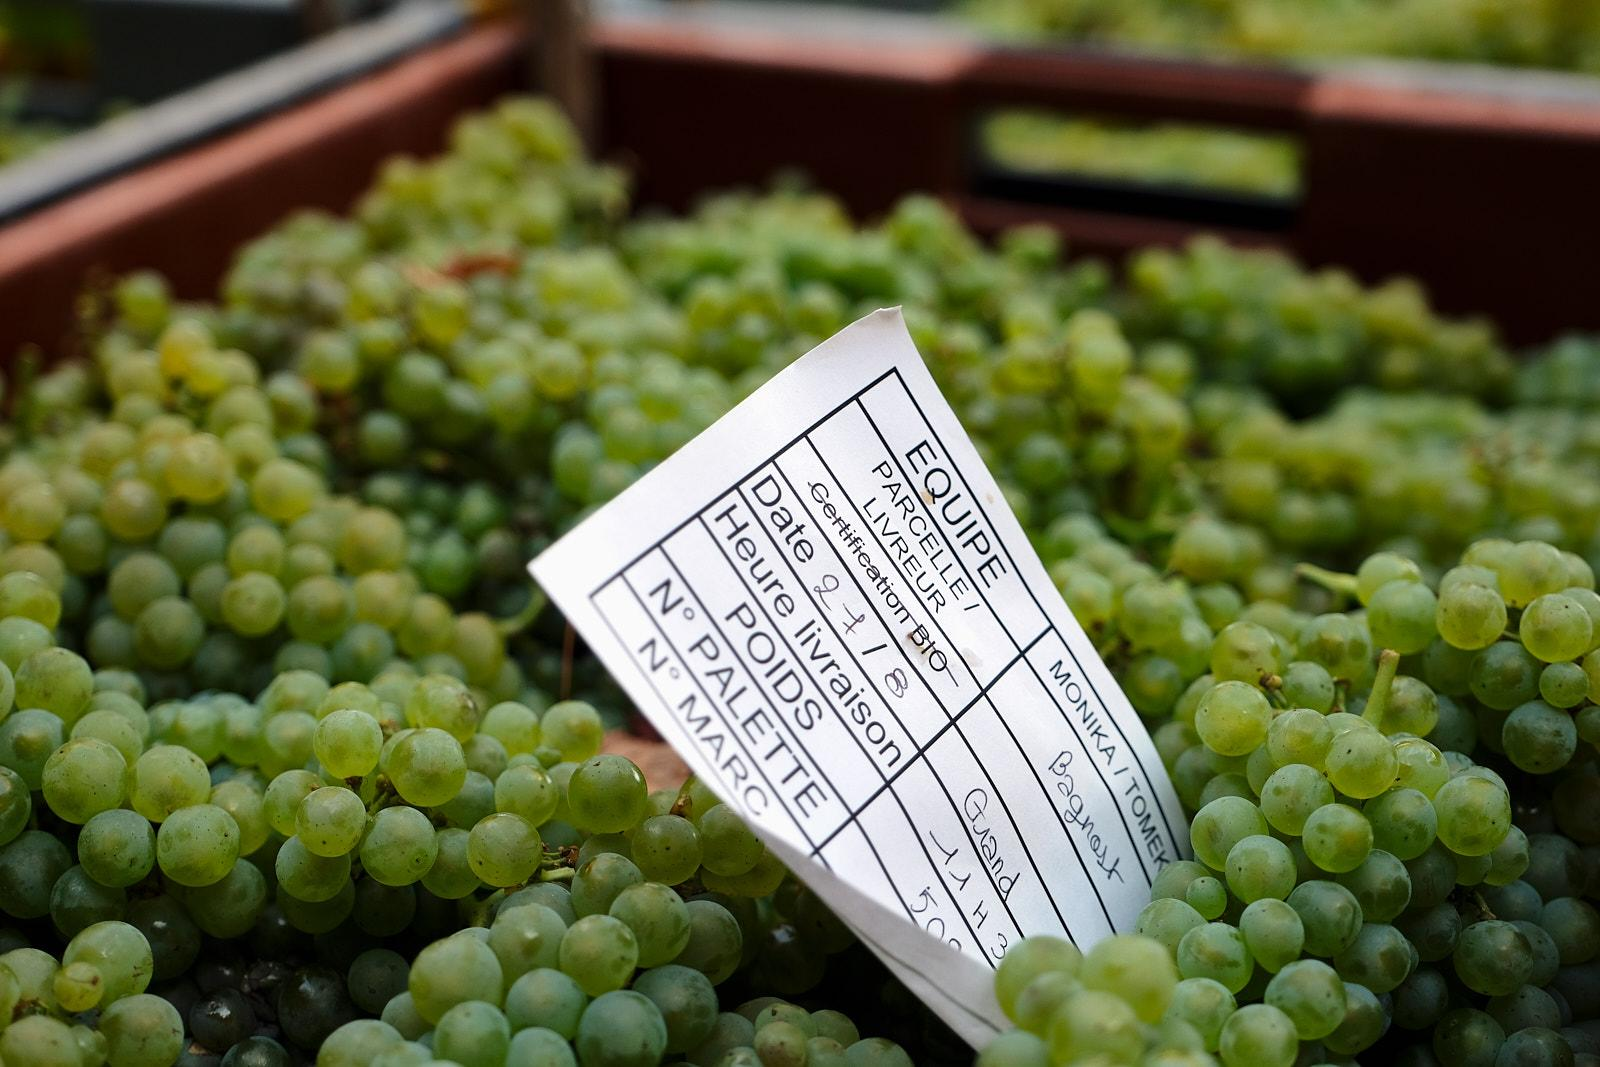 Picked grapes are tightly surveyed as time of harvest, team of pickers and many other criteria are displayed on each crate of grapes